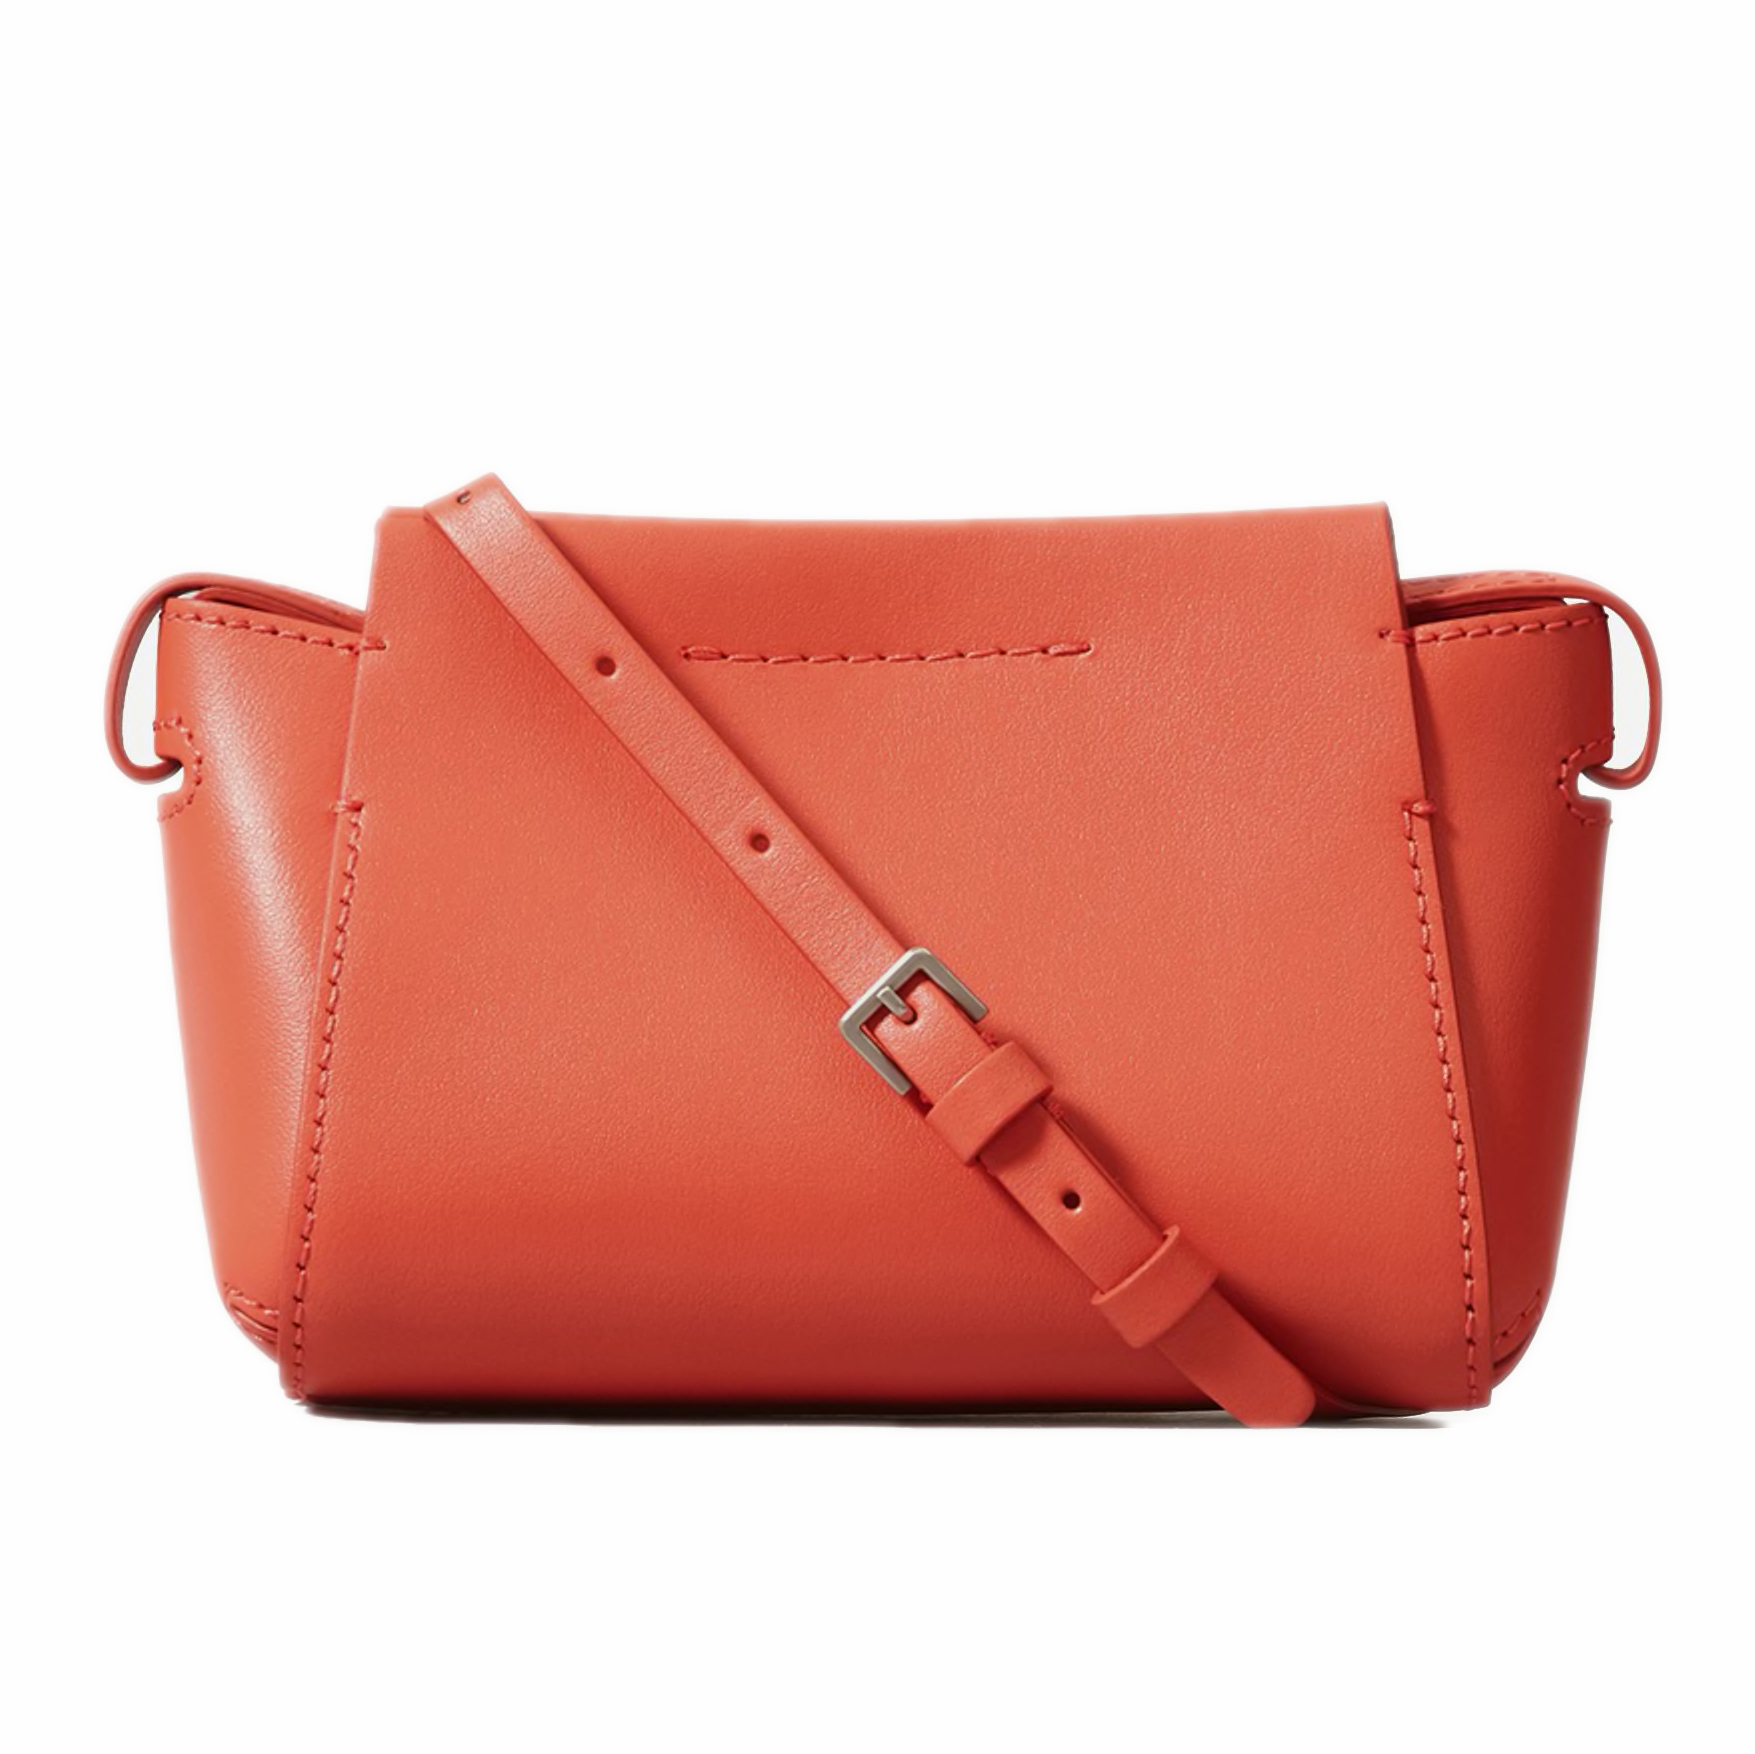 The Micro Form Bag in Coral